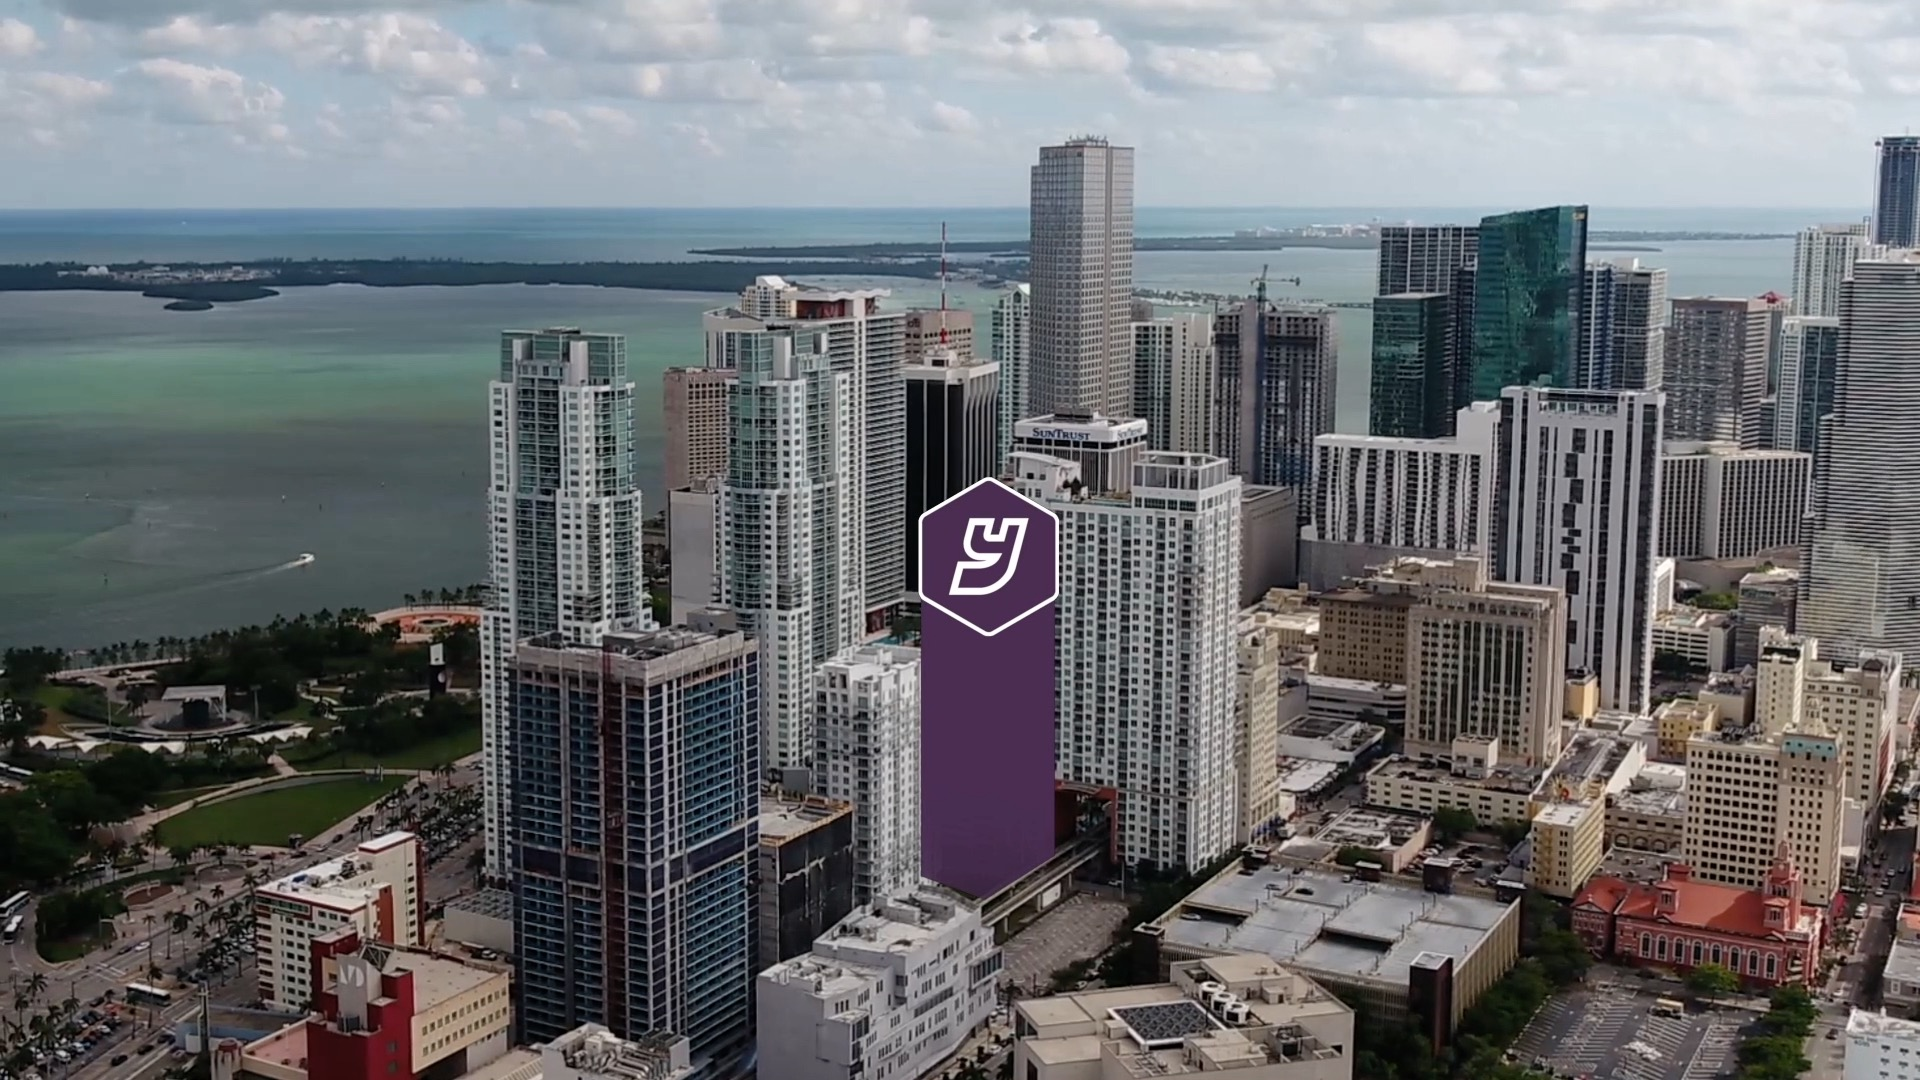 YOTELPAD MIAMI - CORPORATE VIDEOS